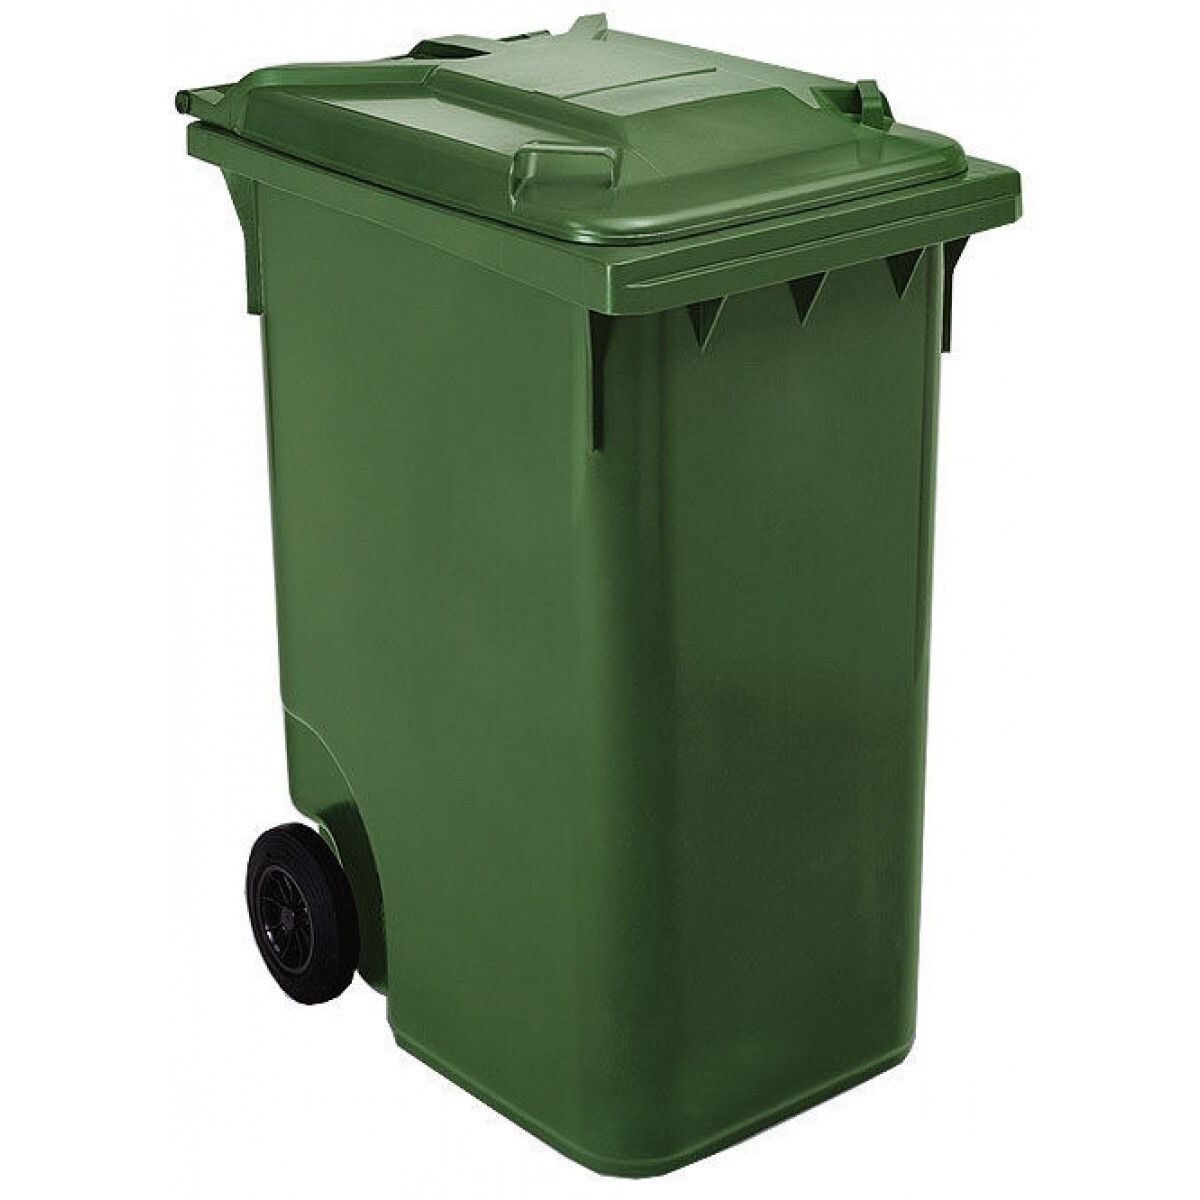 Wheelie Bin Upright 240 Litre £60.00